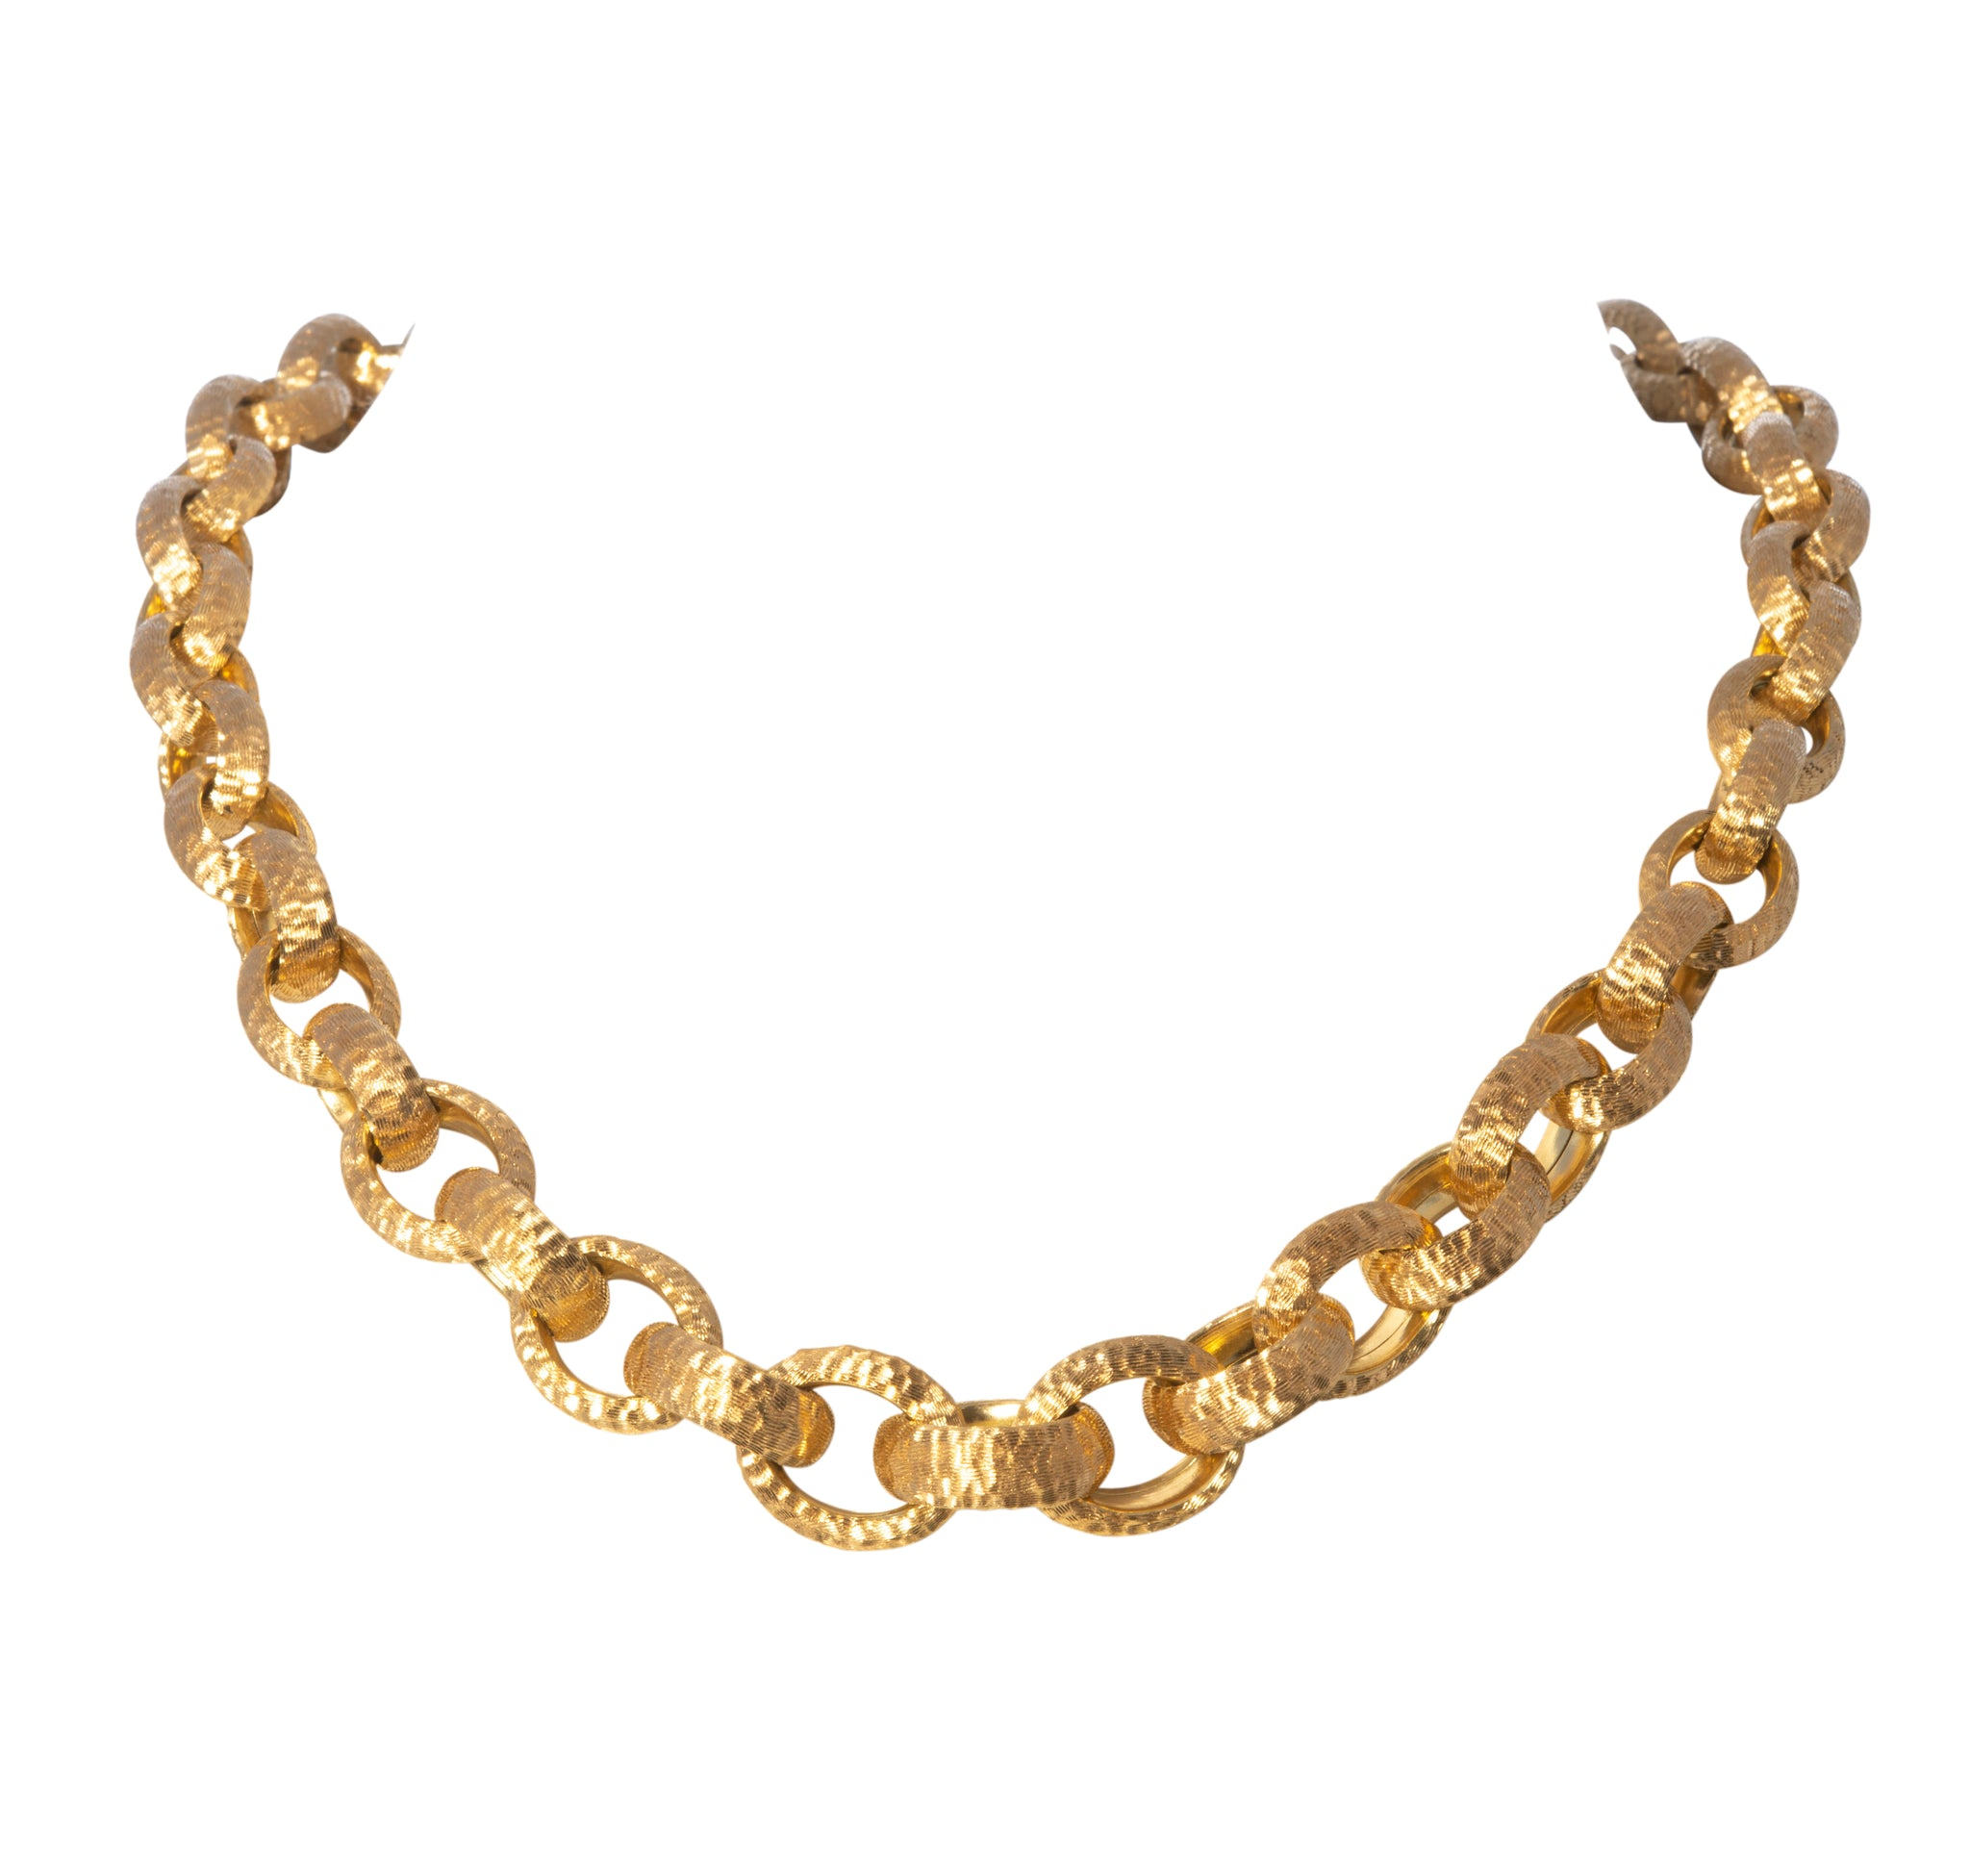 Italian 18K Yellow Gold Hammered Link Necklace